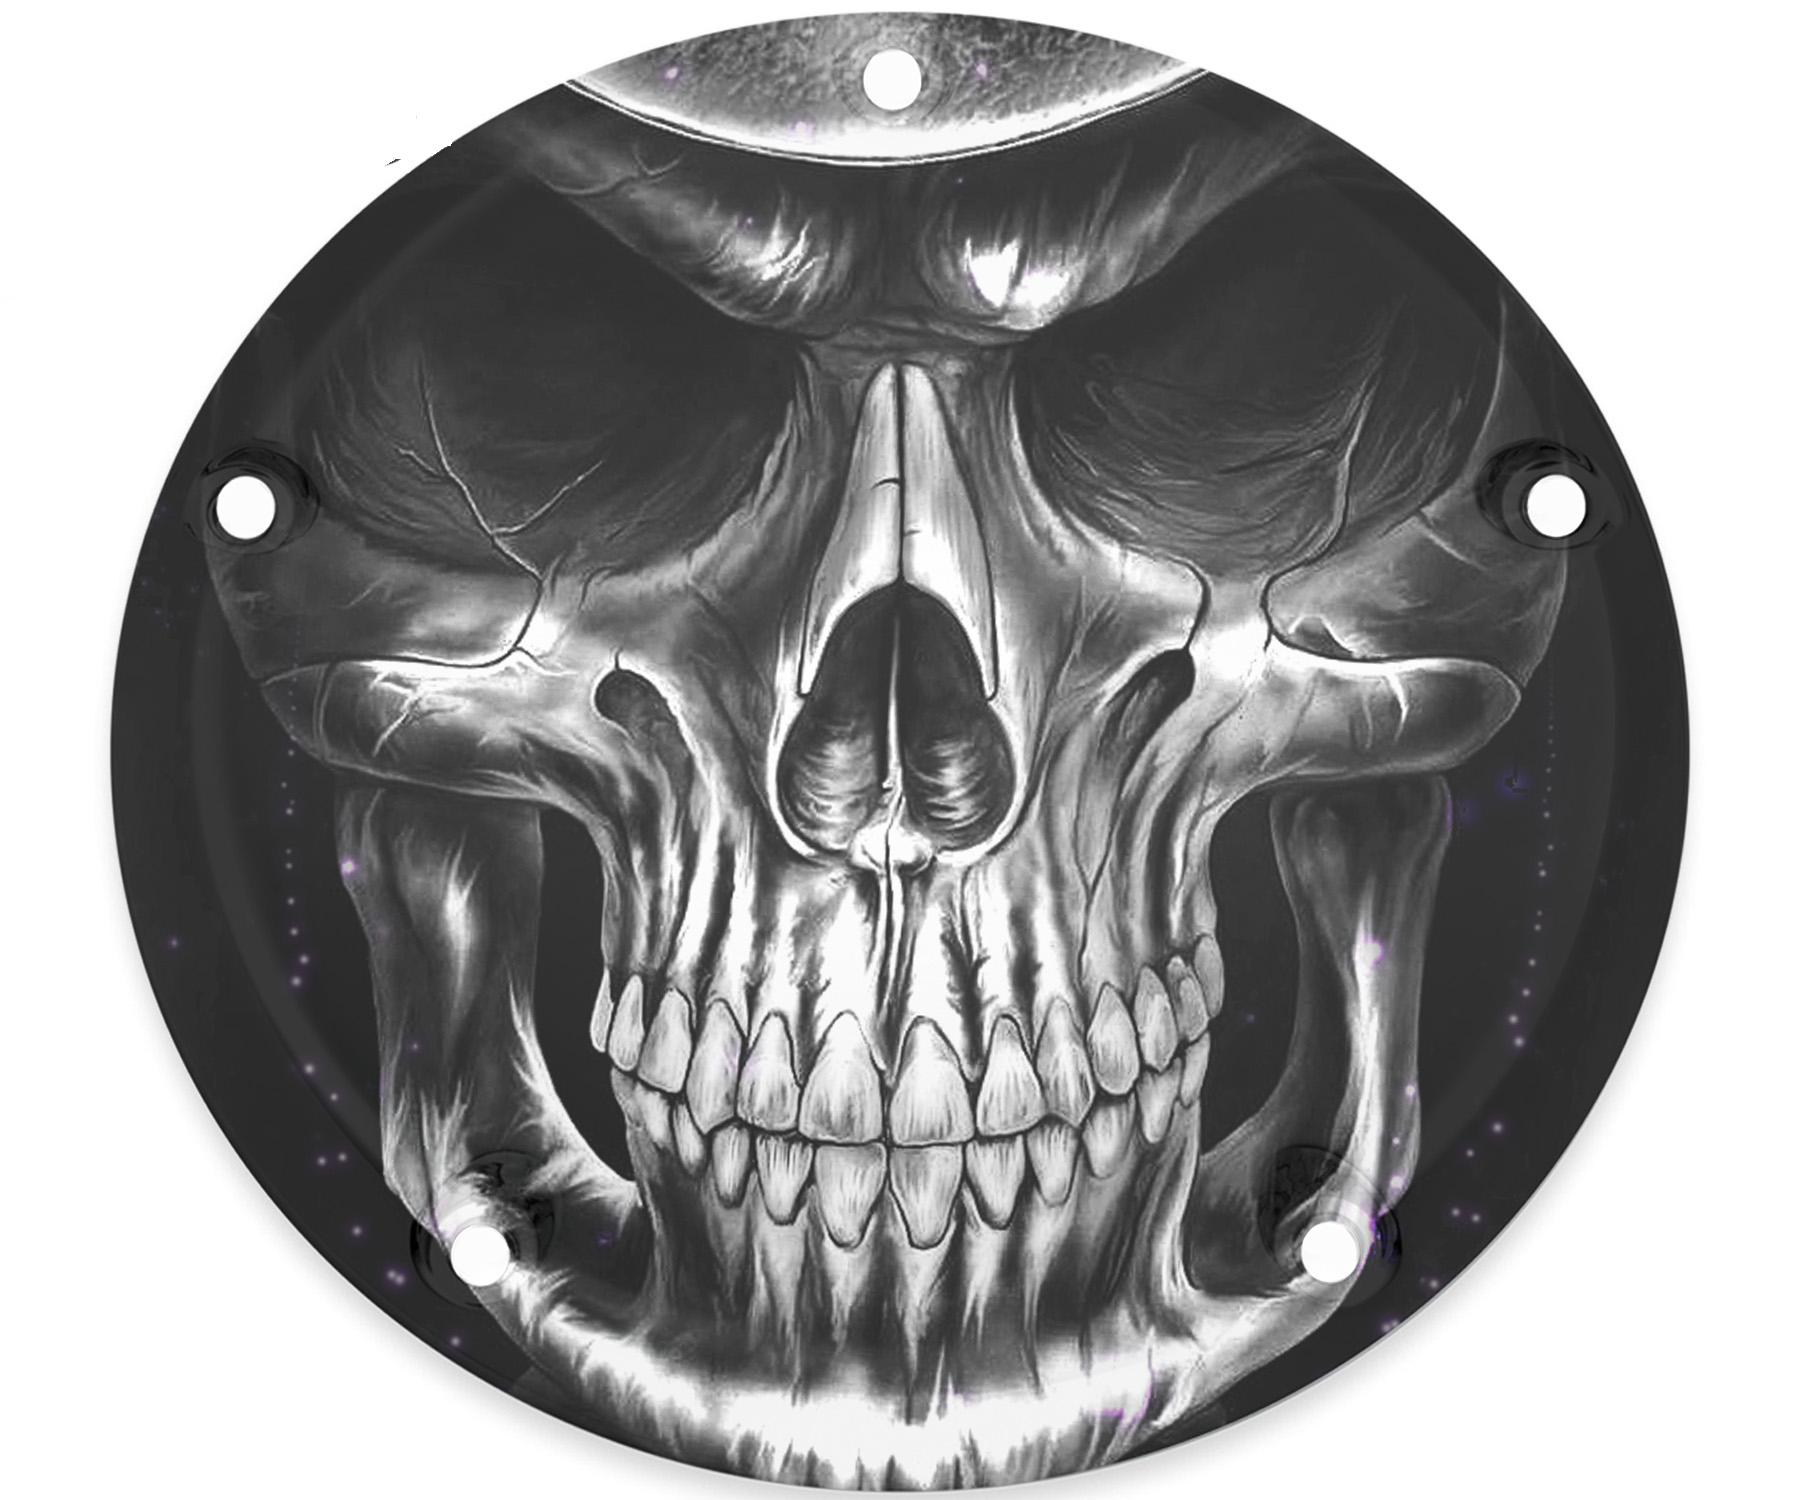 Custom Harley Davidson Timing Cover Blk & Wht Reaper